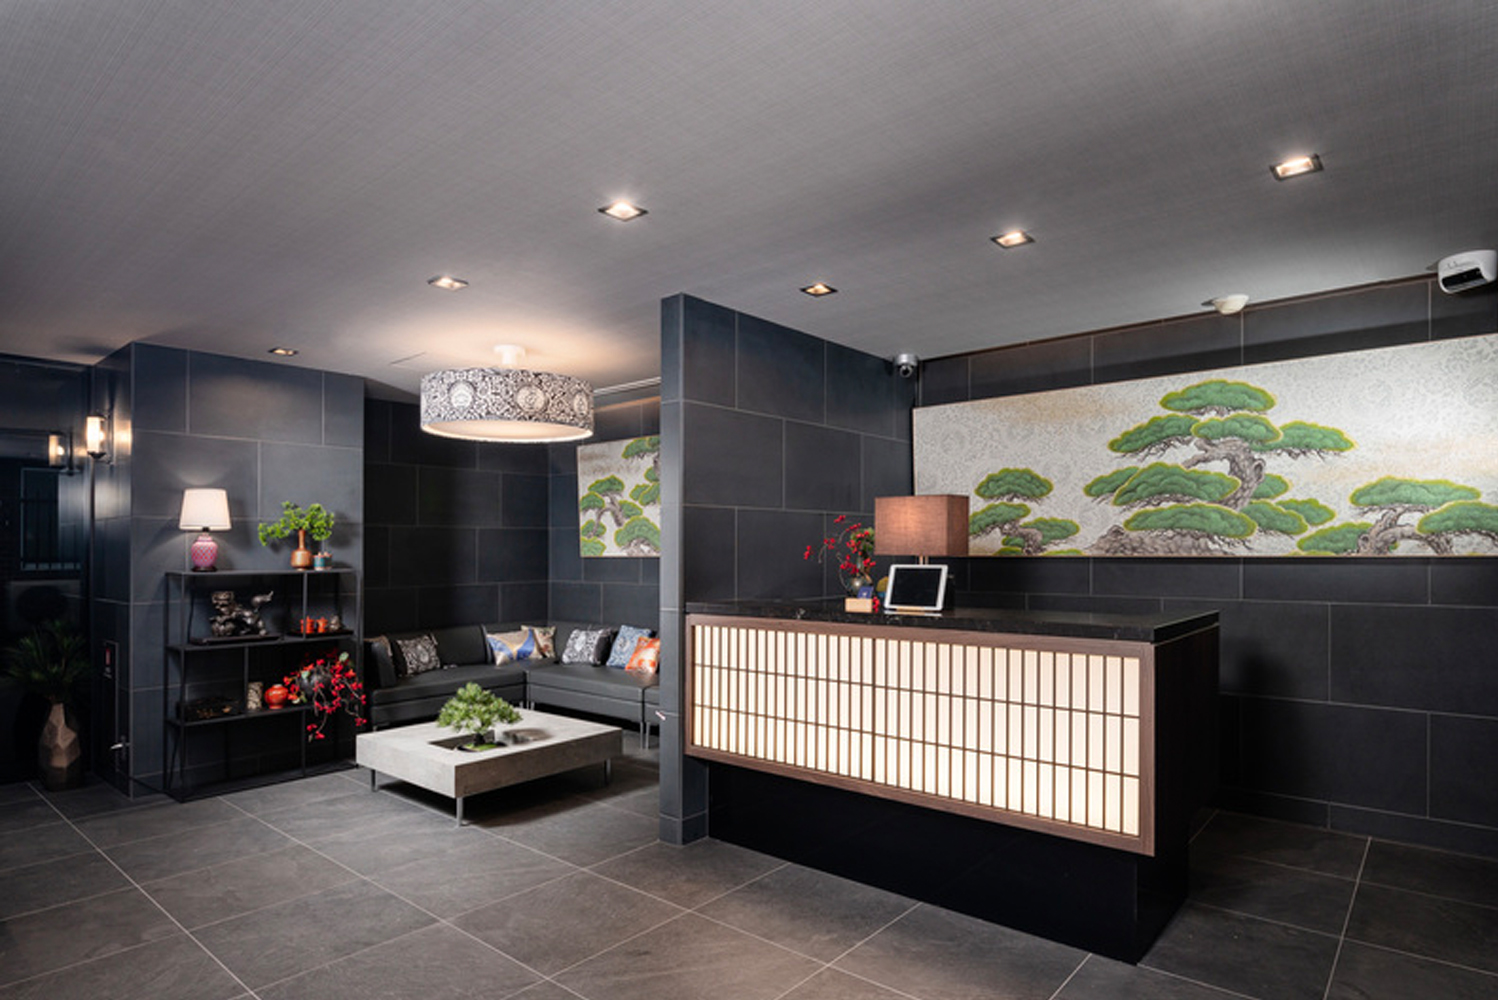 Since February 2018, Apartment Hotel Mimaru has opened 12 hotels with a total of 548 guestrooms in Tokyo and the ancient capital of Kyoto.